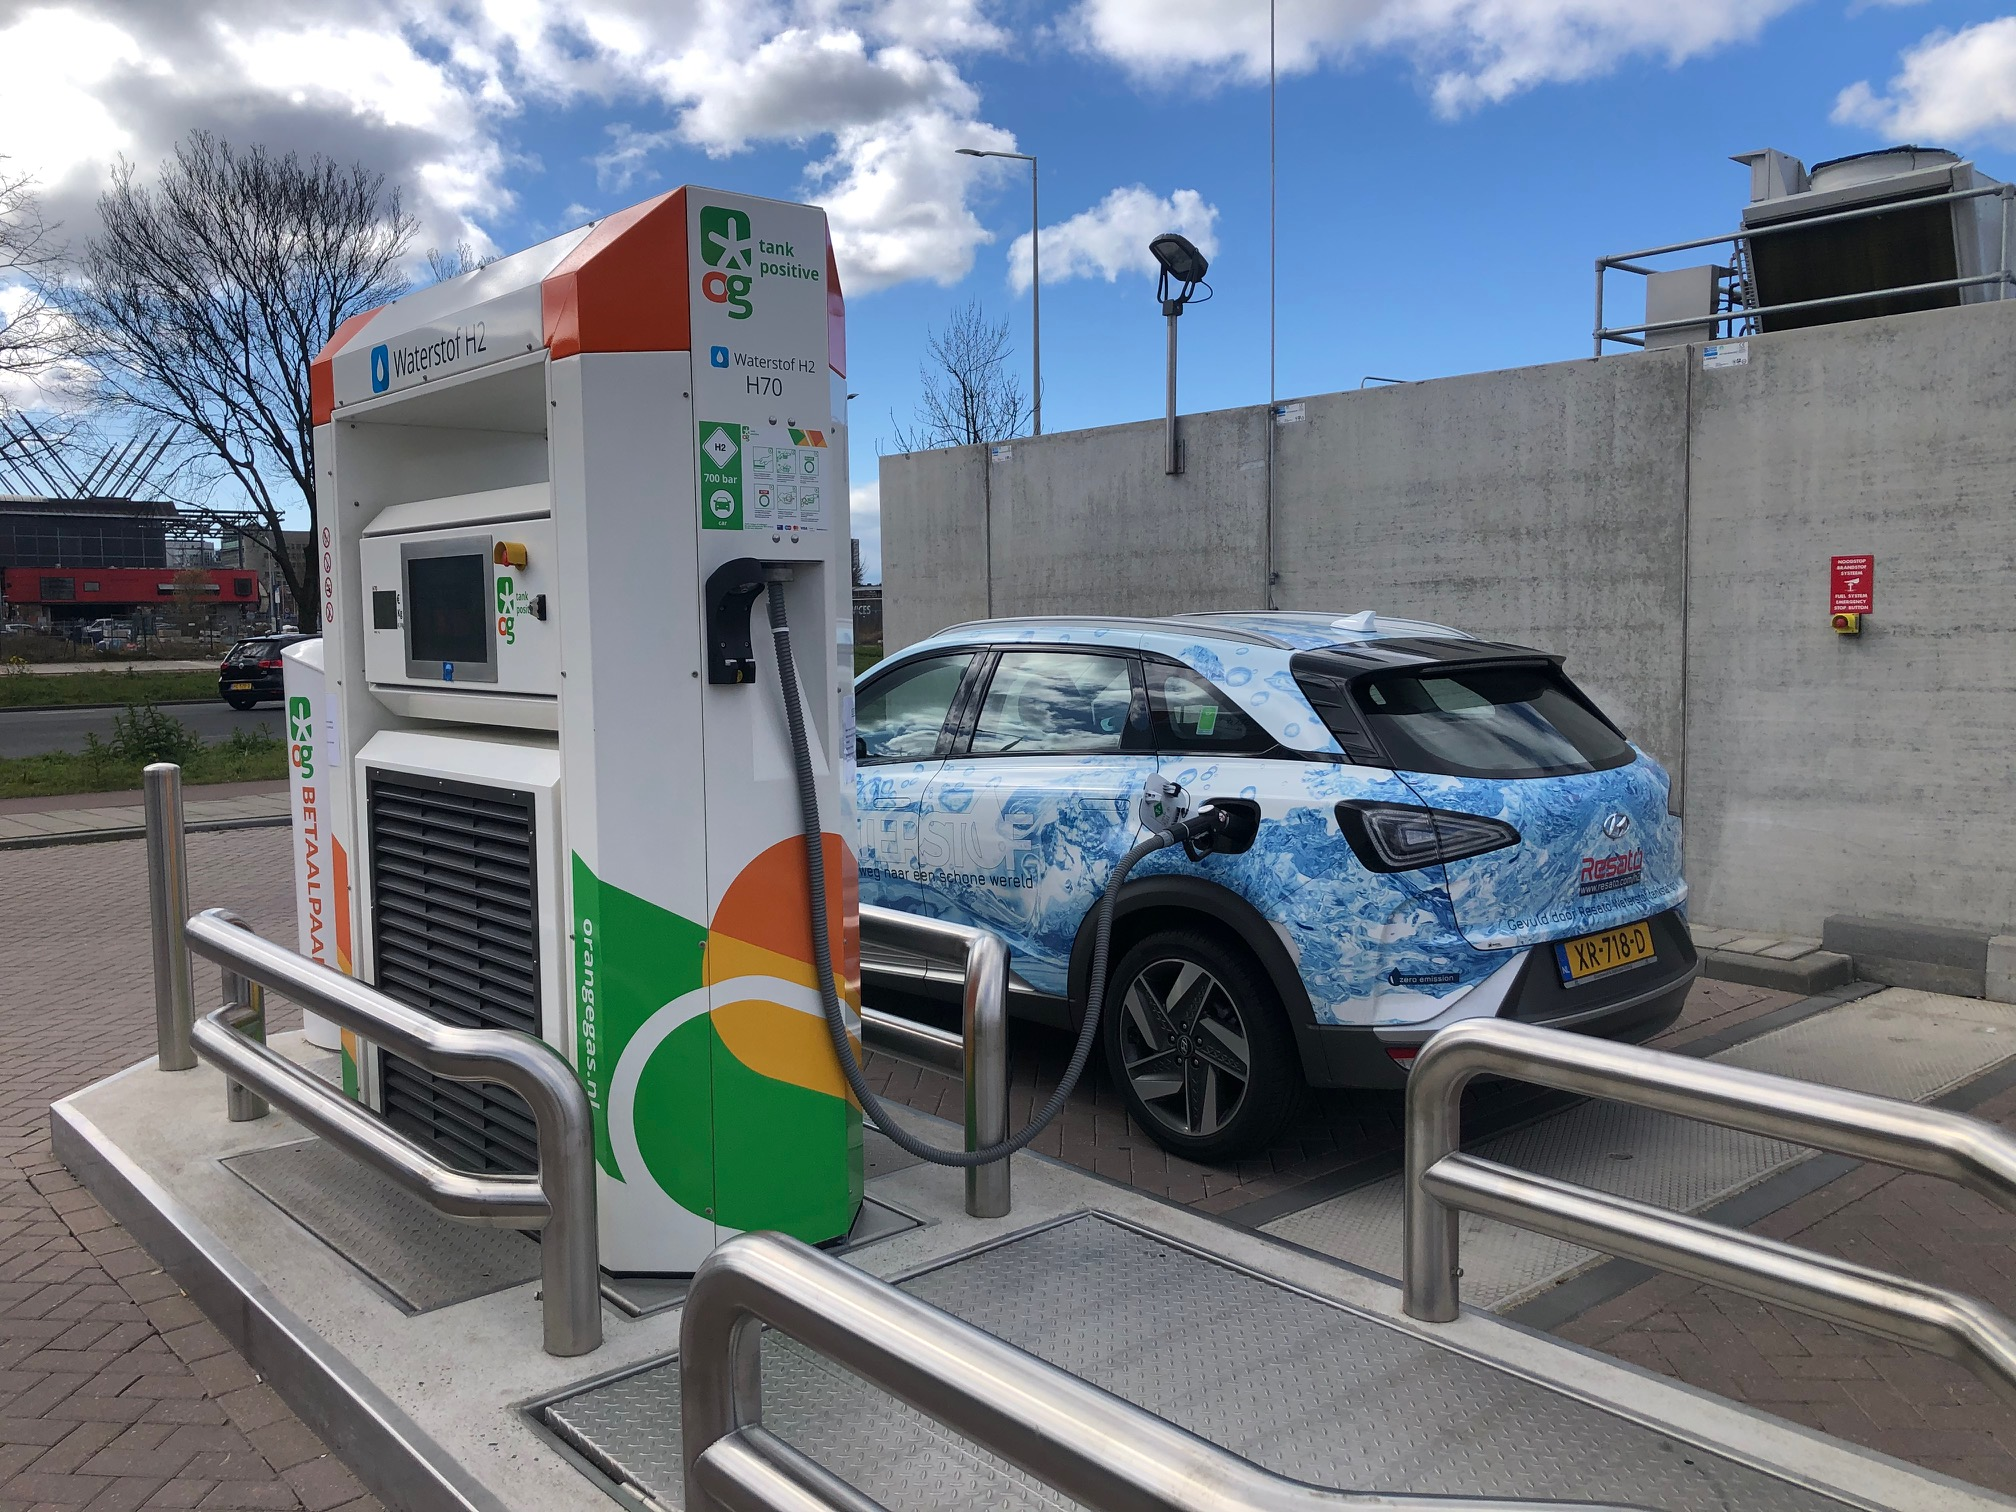 Resato's sustainable vision with hydrogen